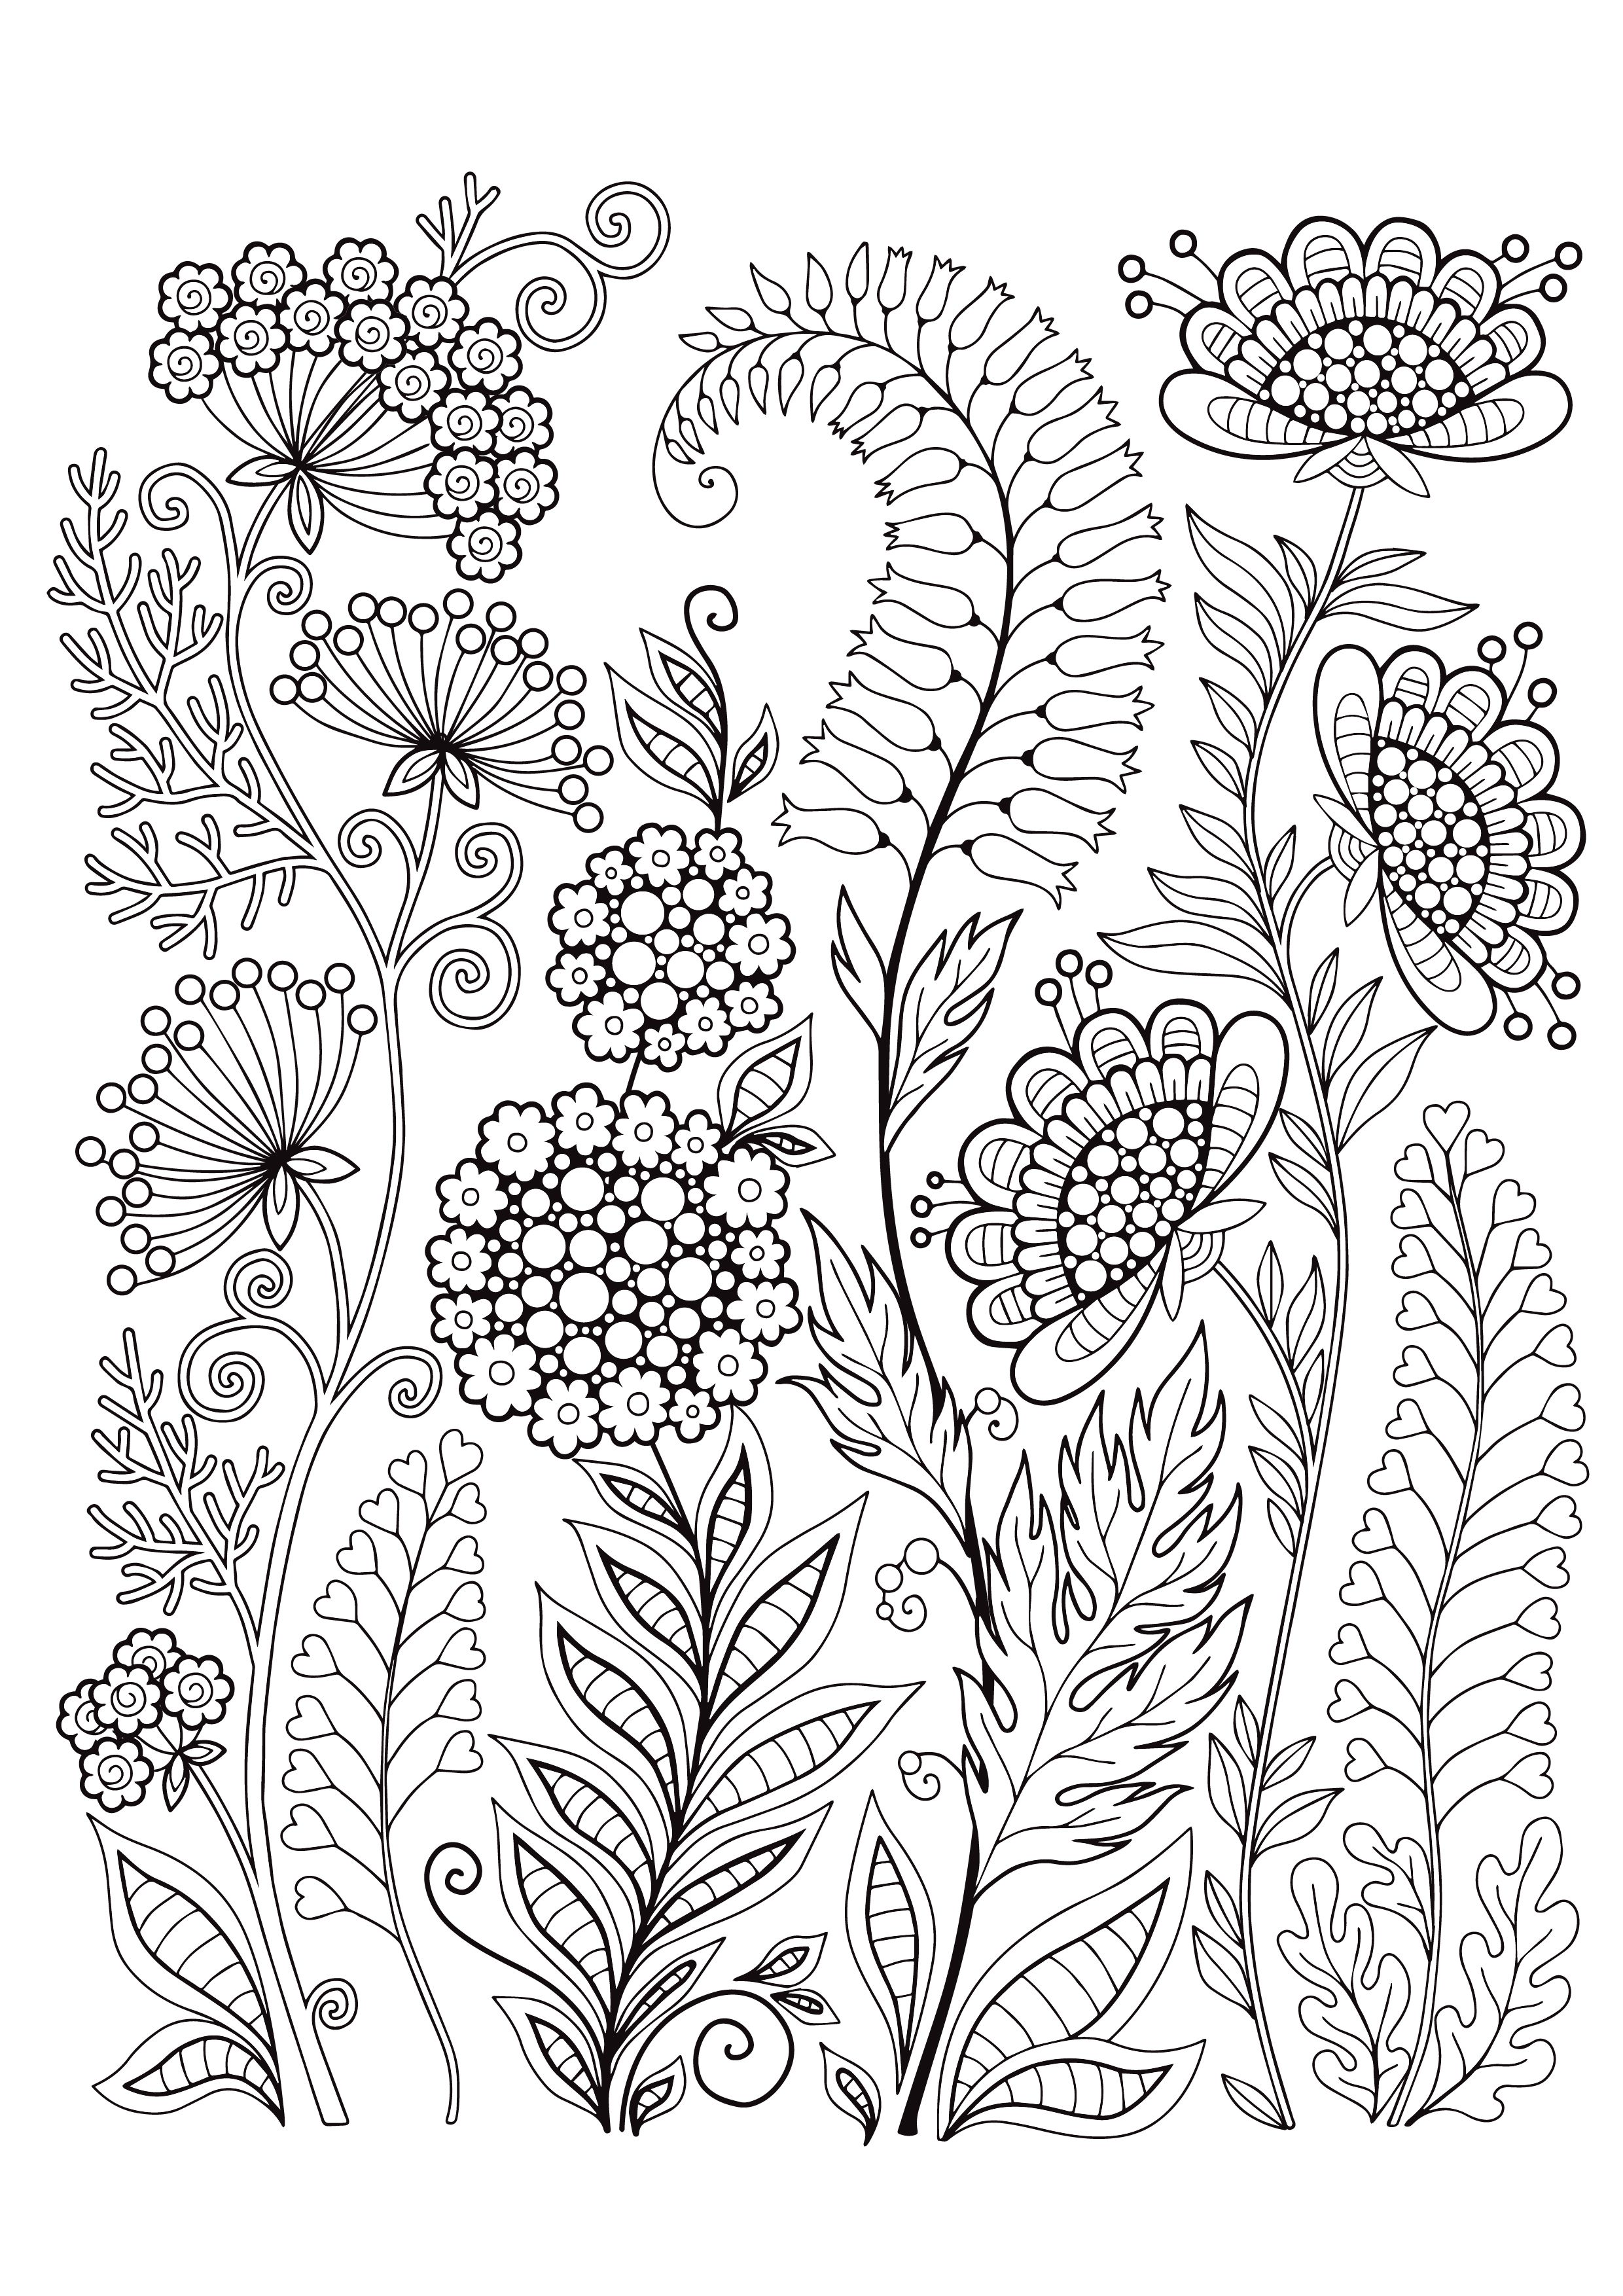 Pin On Mindfulness Coloring